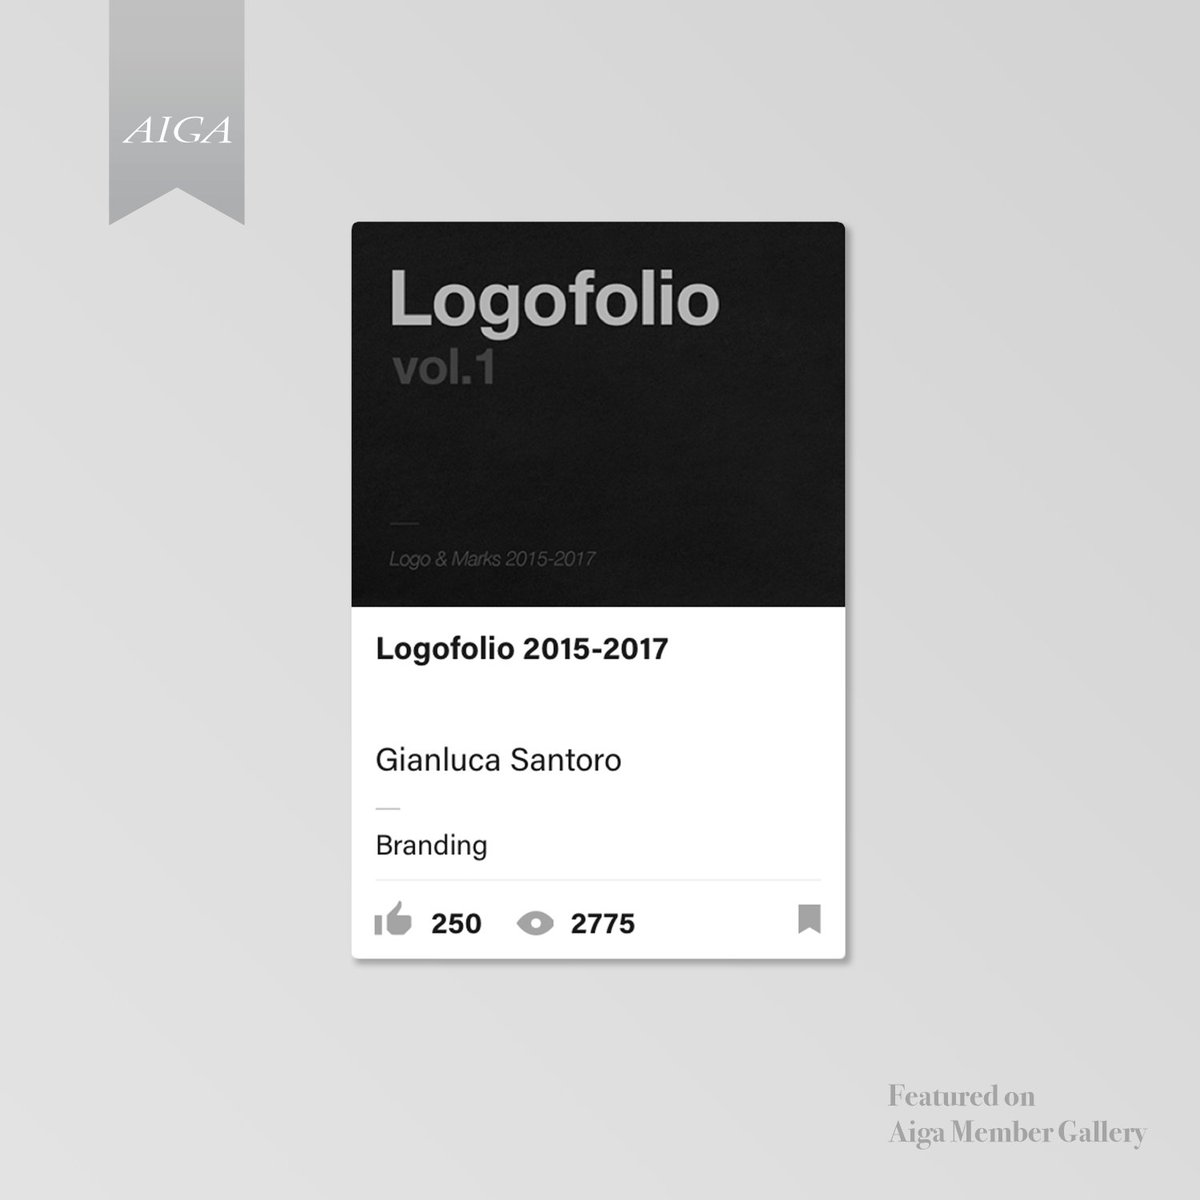 My last project &quot;Logofolio vol.1&quot; has been featured in the #aigadesign gallery of #behance. Here the full project:  https:// goo.gl/nocmia  &nbsp;  <br>http://pic.twitter.com/AXONAGaFea